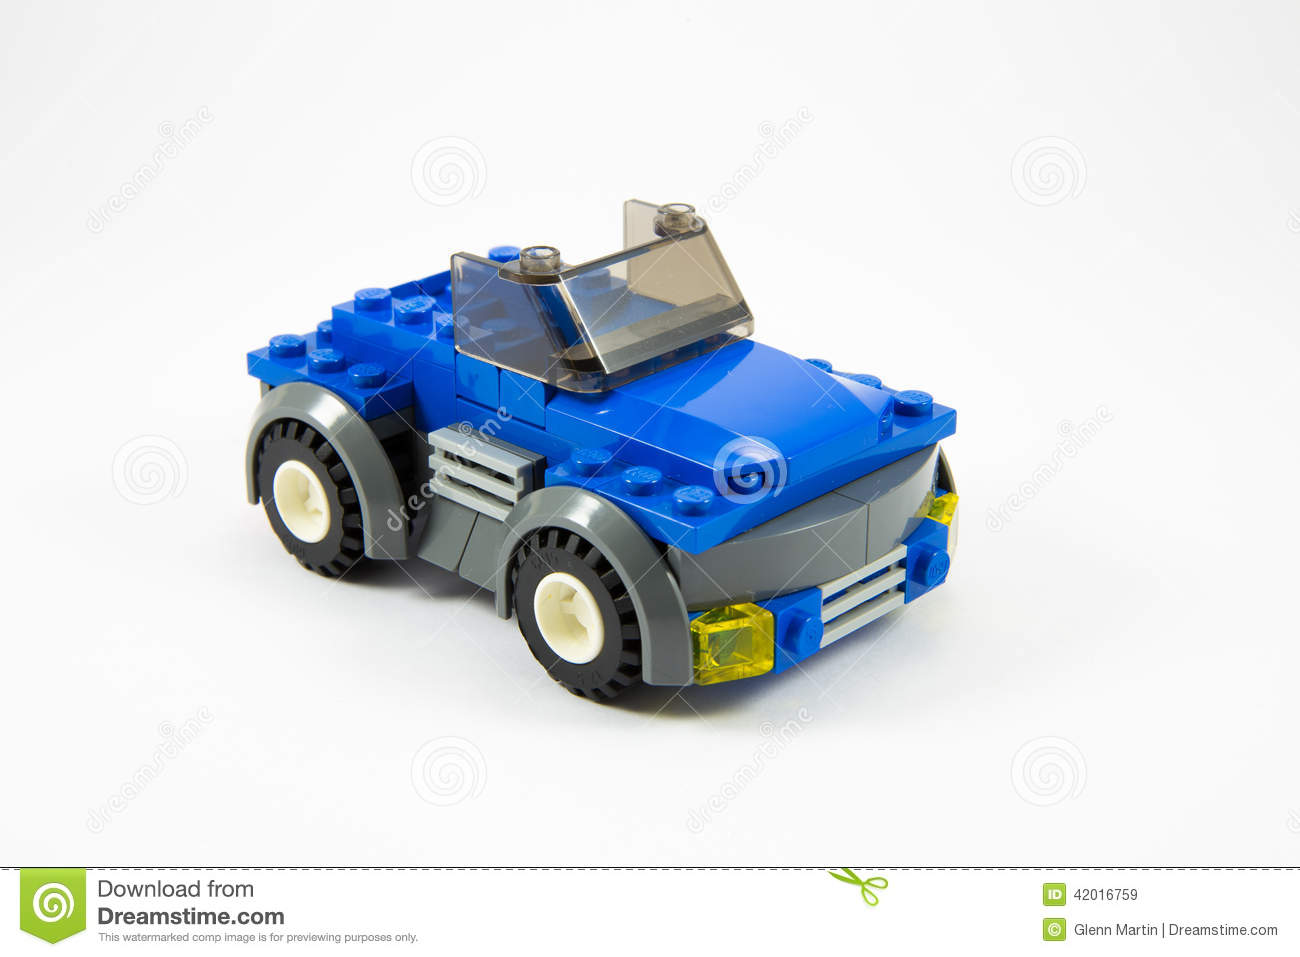 Nice Download Blue Lego Car Editorial Stock Image. Image Of Lego, Seater    42016759